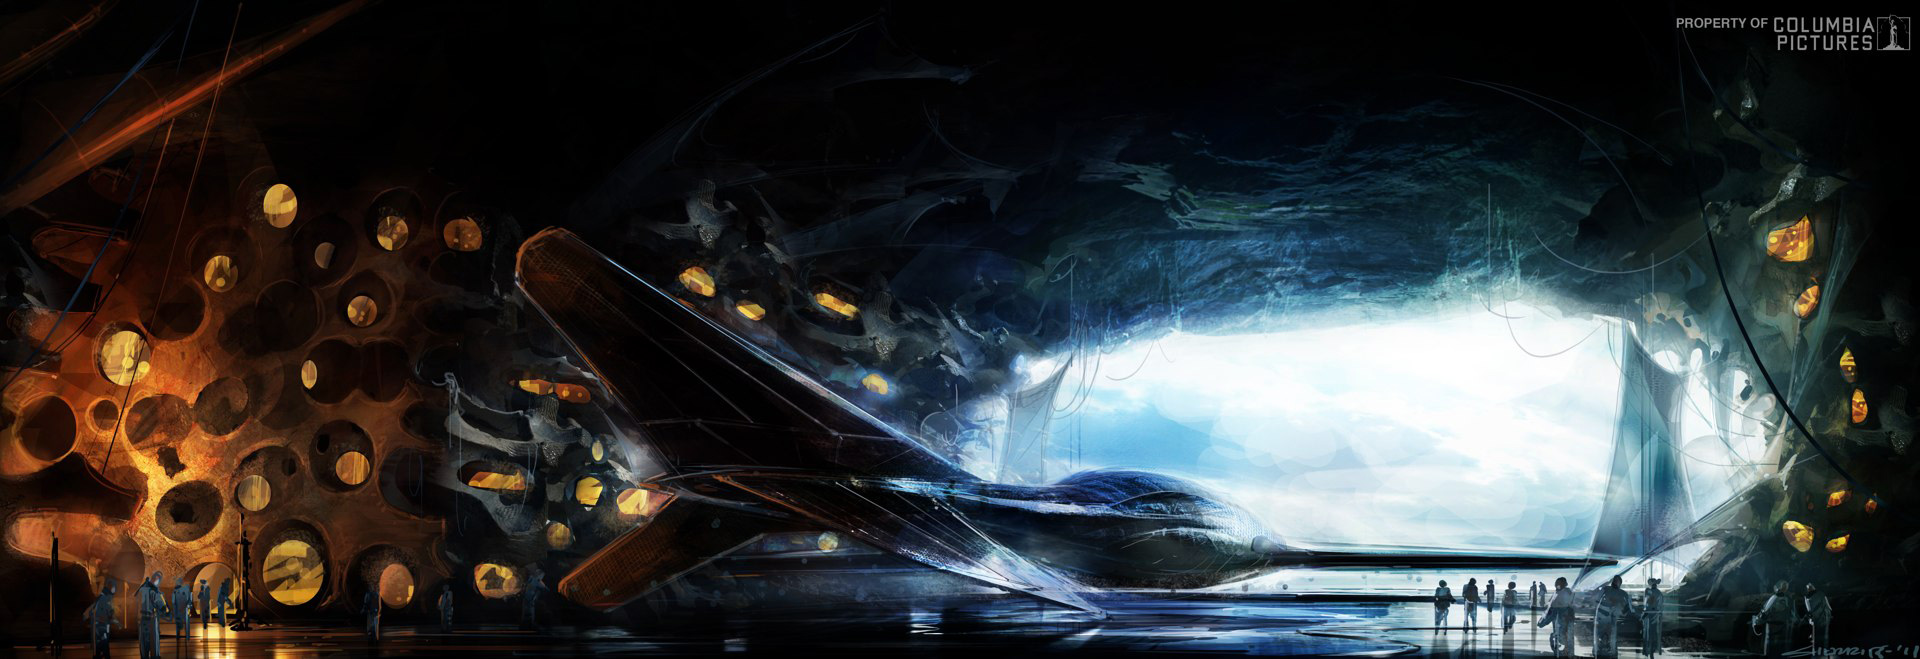 after earth concept art - photo #18